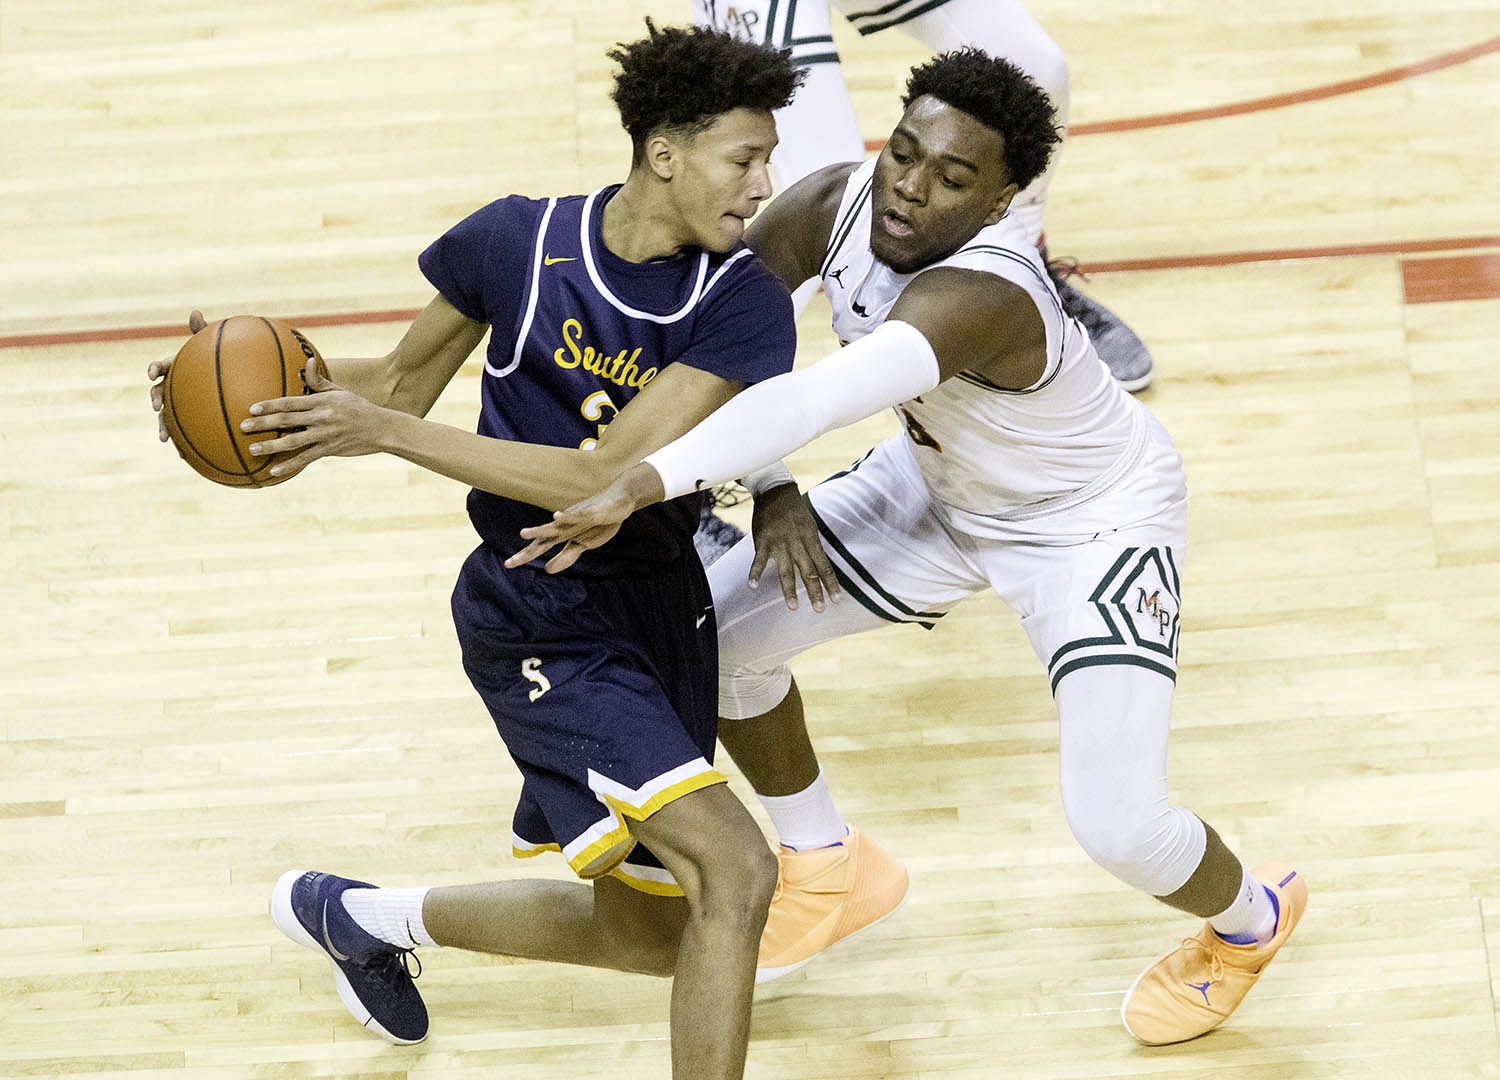 Morgan Park's Kenyon Duling pressures Southeast's Michael Tyler  during the 3A championship game at Carver Arena in Peoria, Ill., Saturday, March 17, 2018. [Ted Schurter/The State Journal-Register]